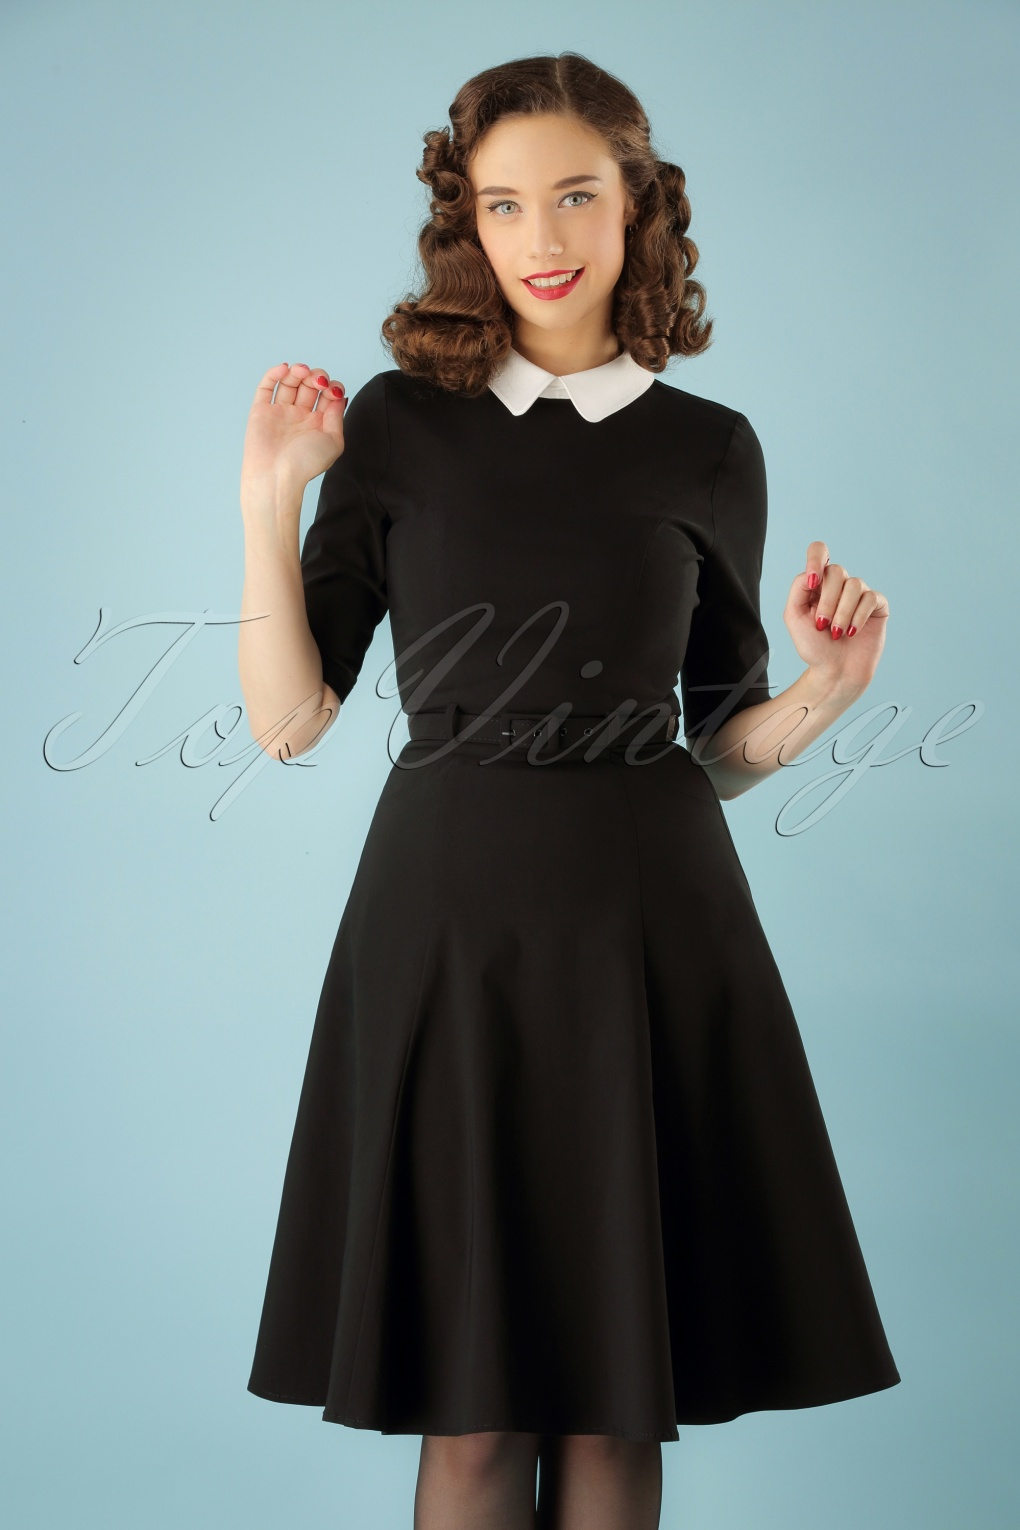 Modest Mature Mrs Vintage Dresses 20s 30s 40s 50s 60s